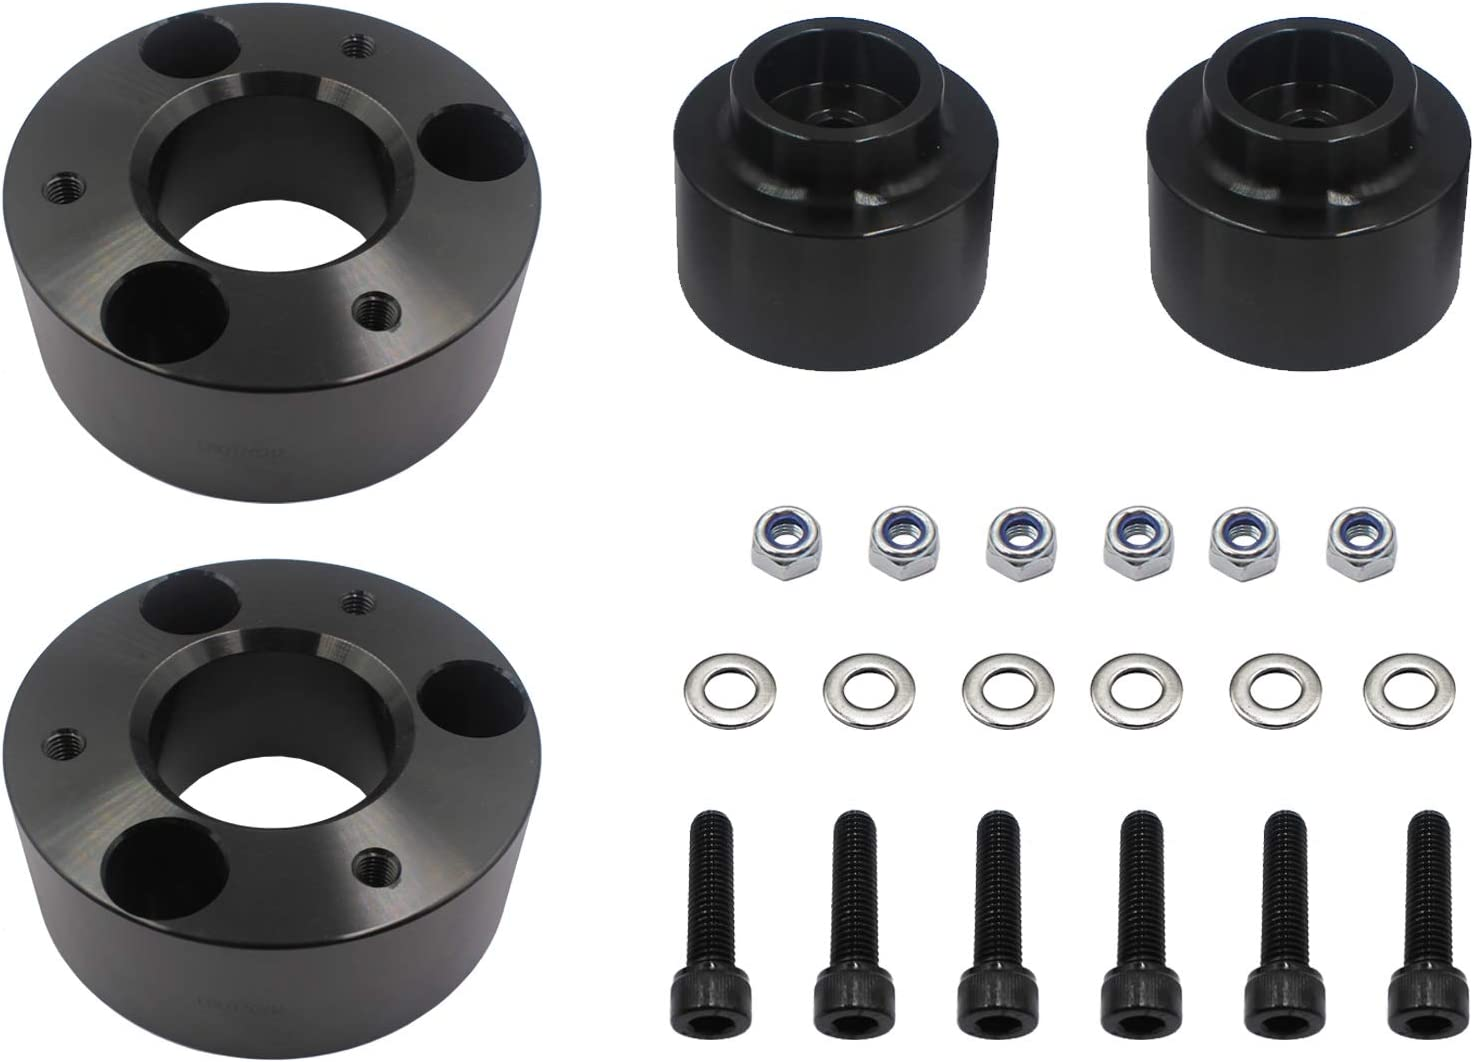 2 inch Rear Full Lift Kit Leveling Kit Compatible with Dodge Ram 1500 4WD 2009-2018 Black LAFORMO 3 inch Front